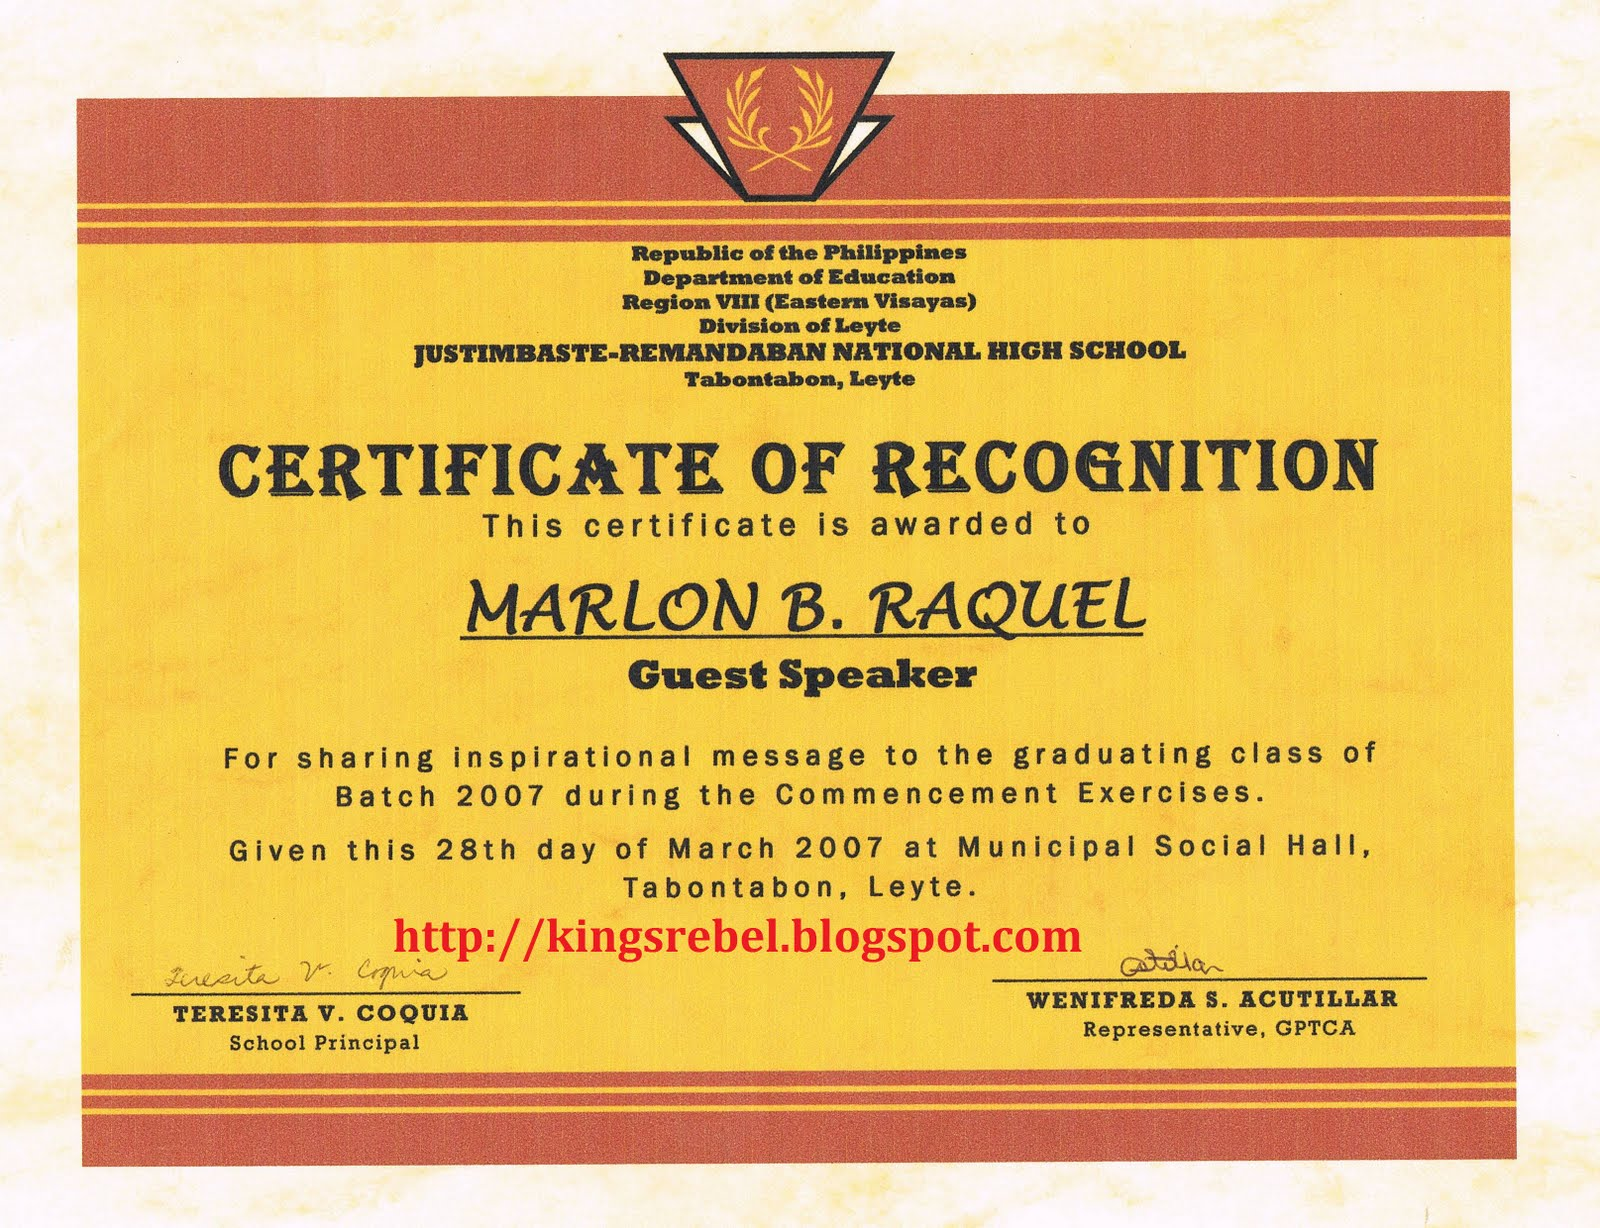 Tidbits and bytes example of certificate of appreciation guest tidbits and bytes example of certificate of appreciation guest speaker 2007 commencement exercises of justimbaste remandaban national high school yadclub Gallery